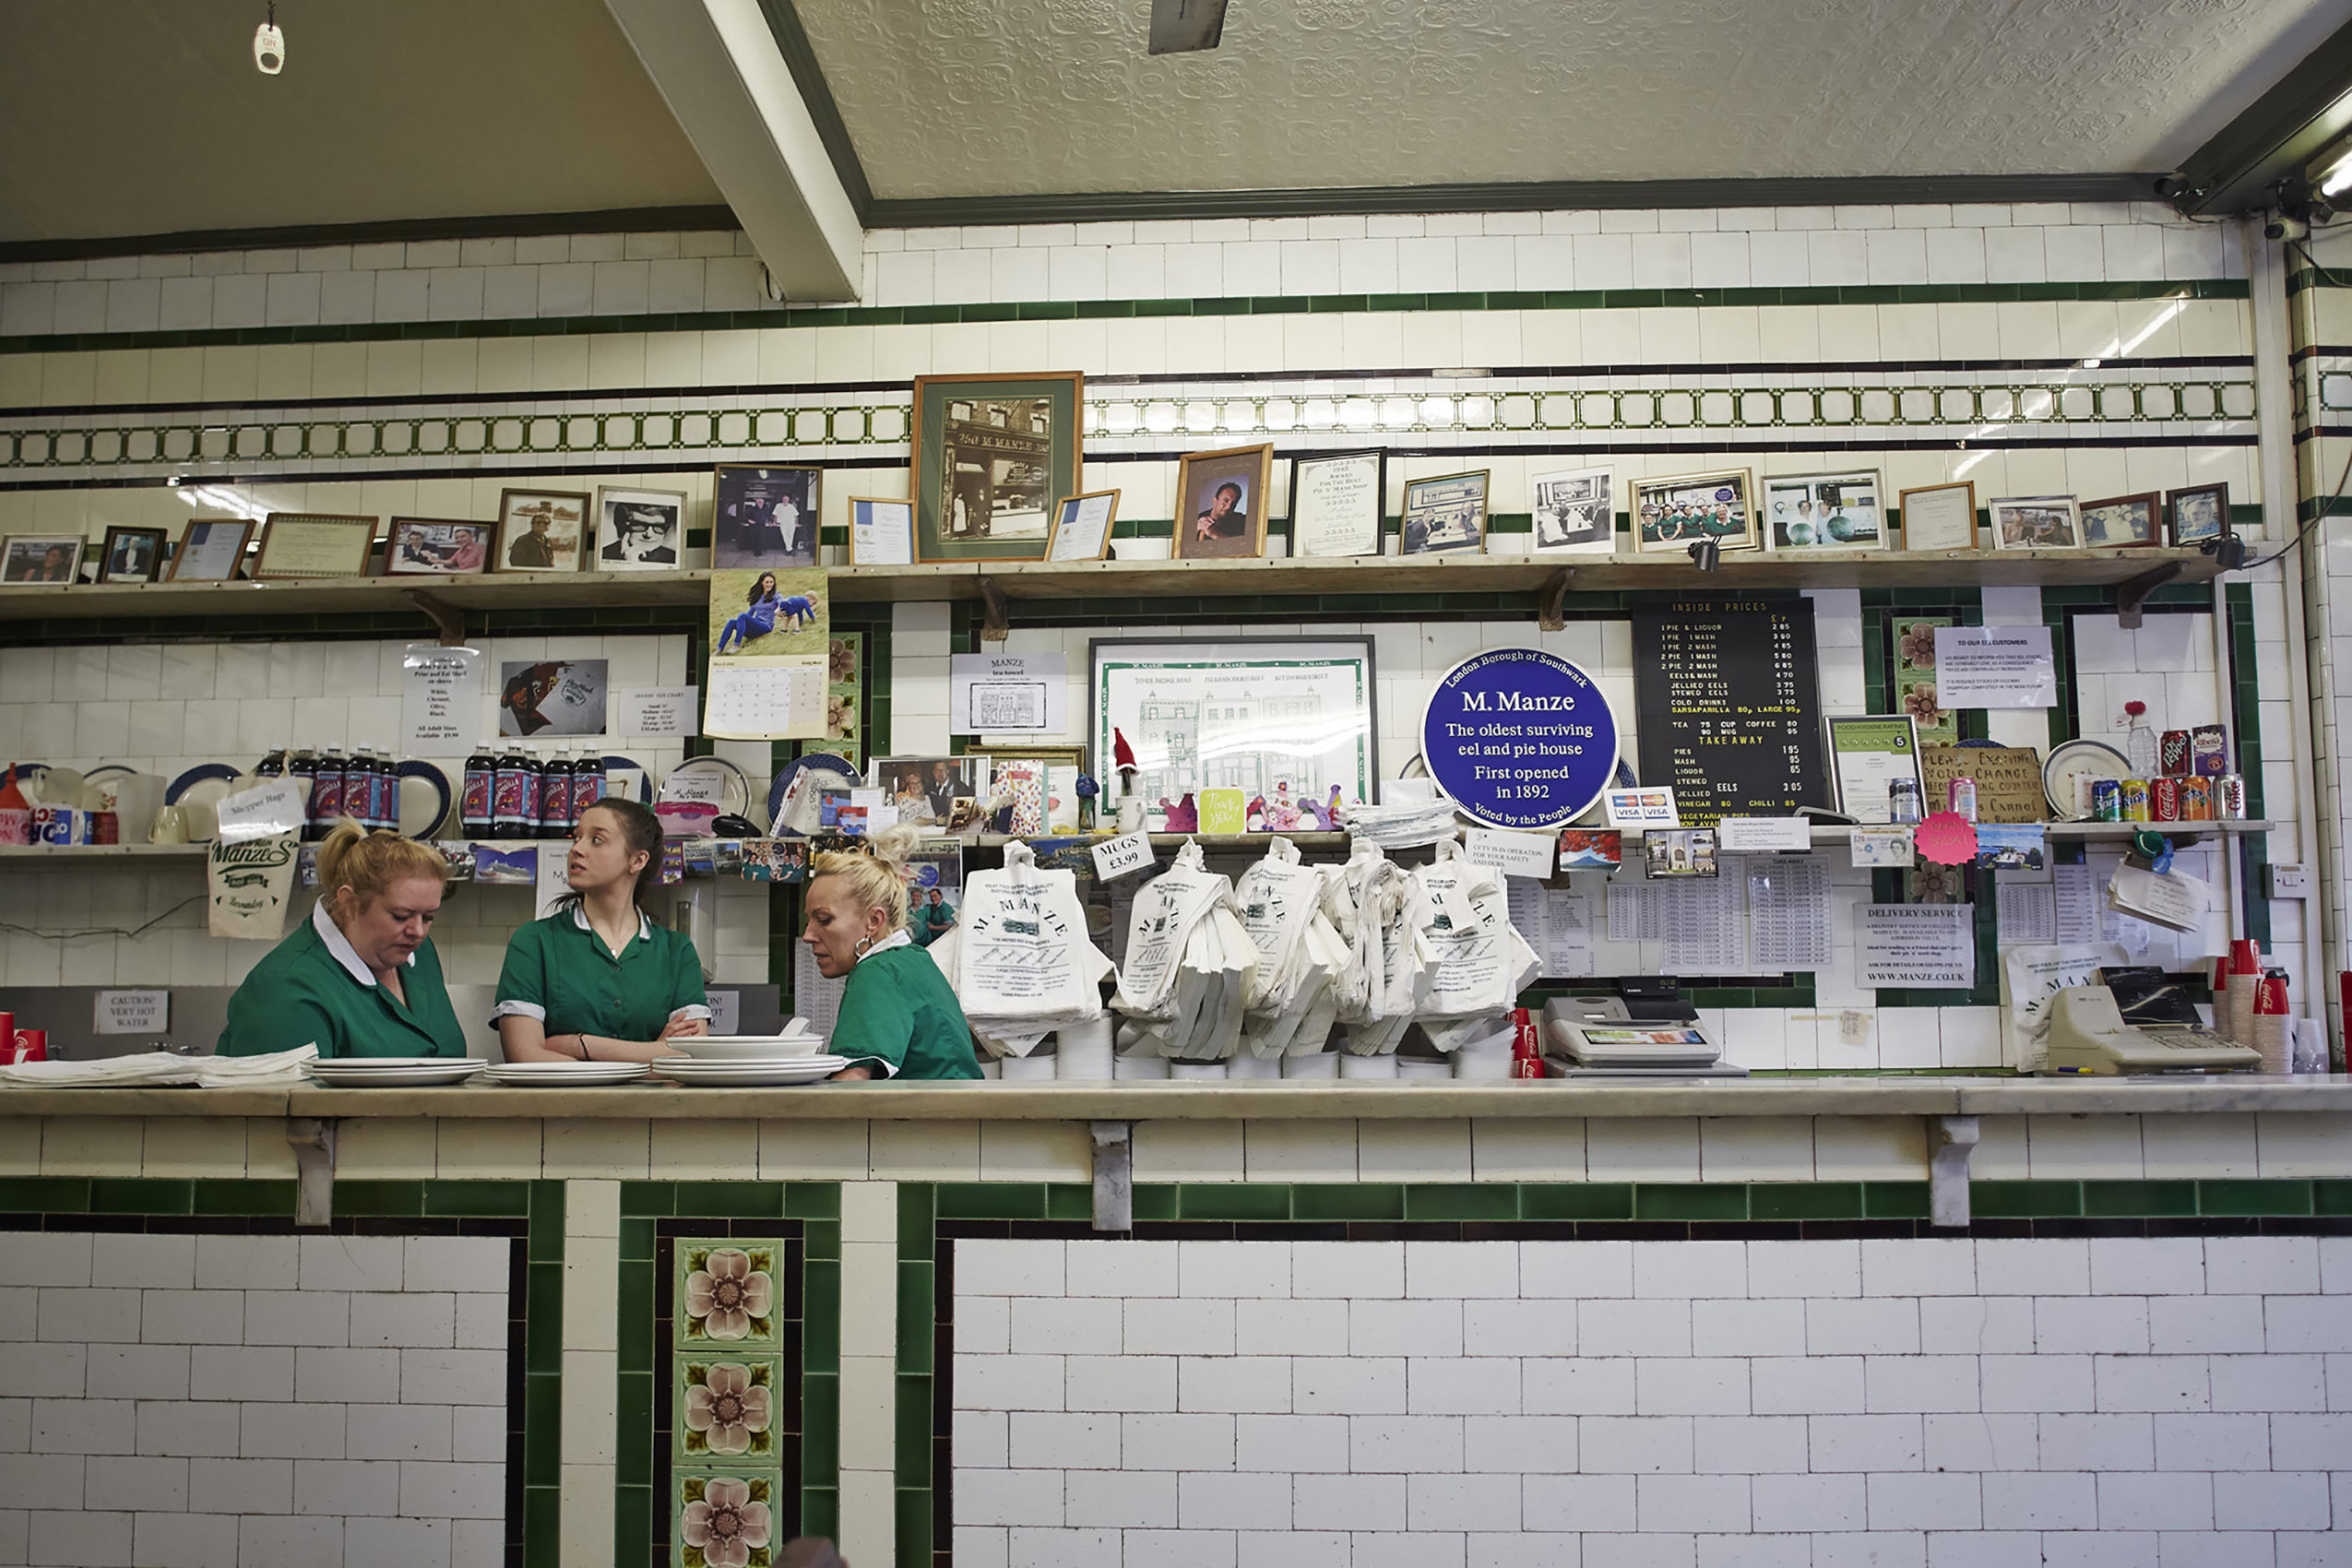 SteveRyan_Photographer_Reportage_PieandMash_London_MManze_14